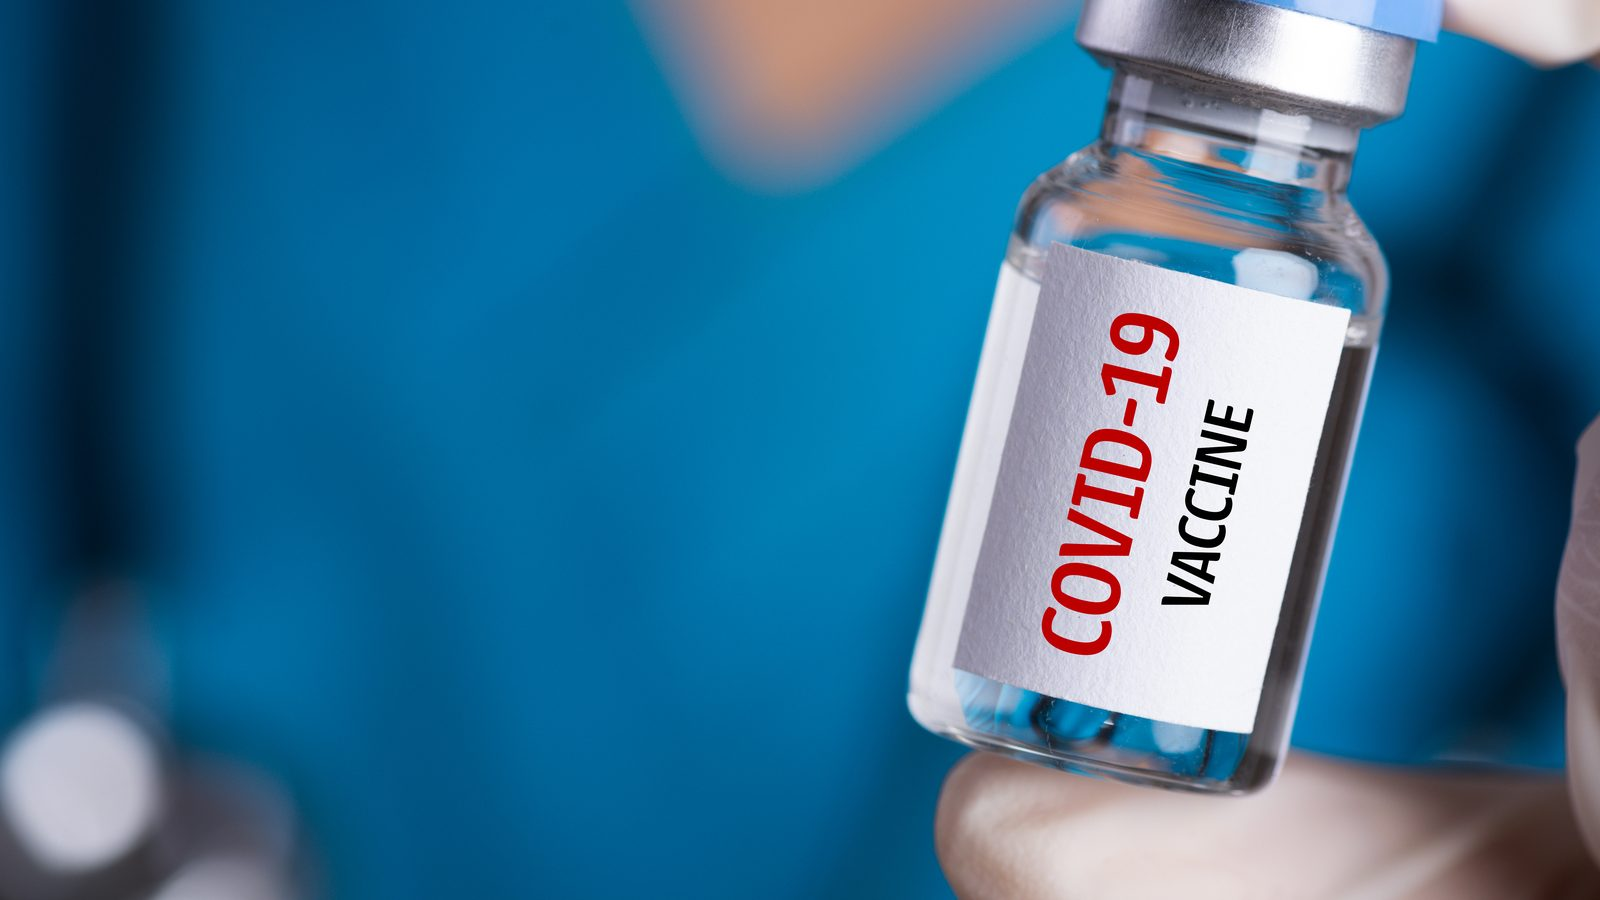 Other Ways to Get Vaccinated